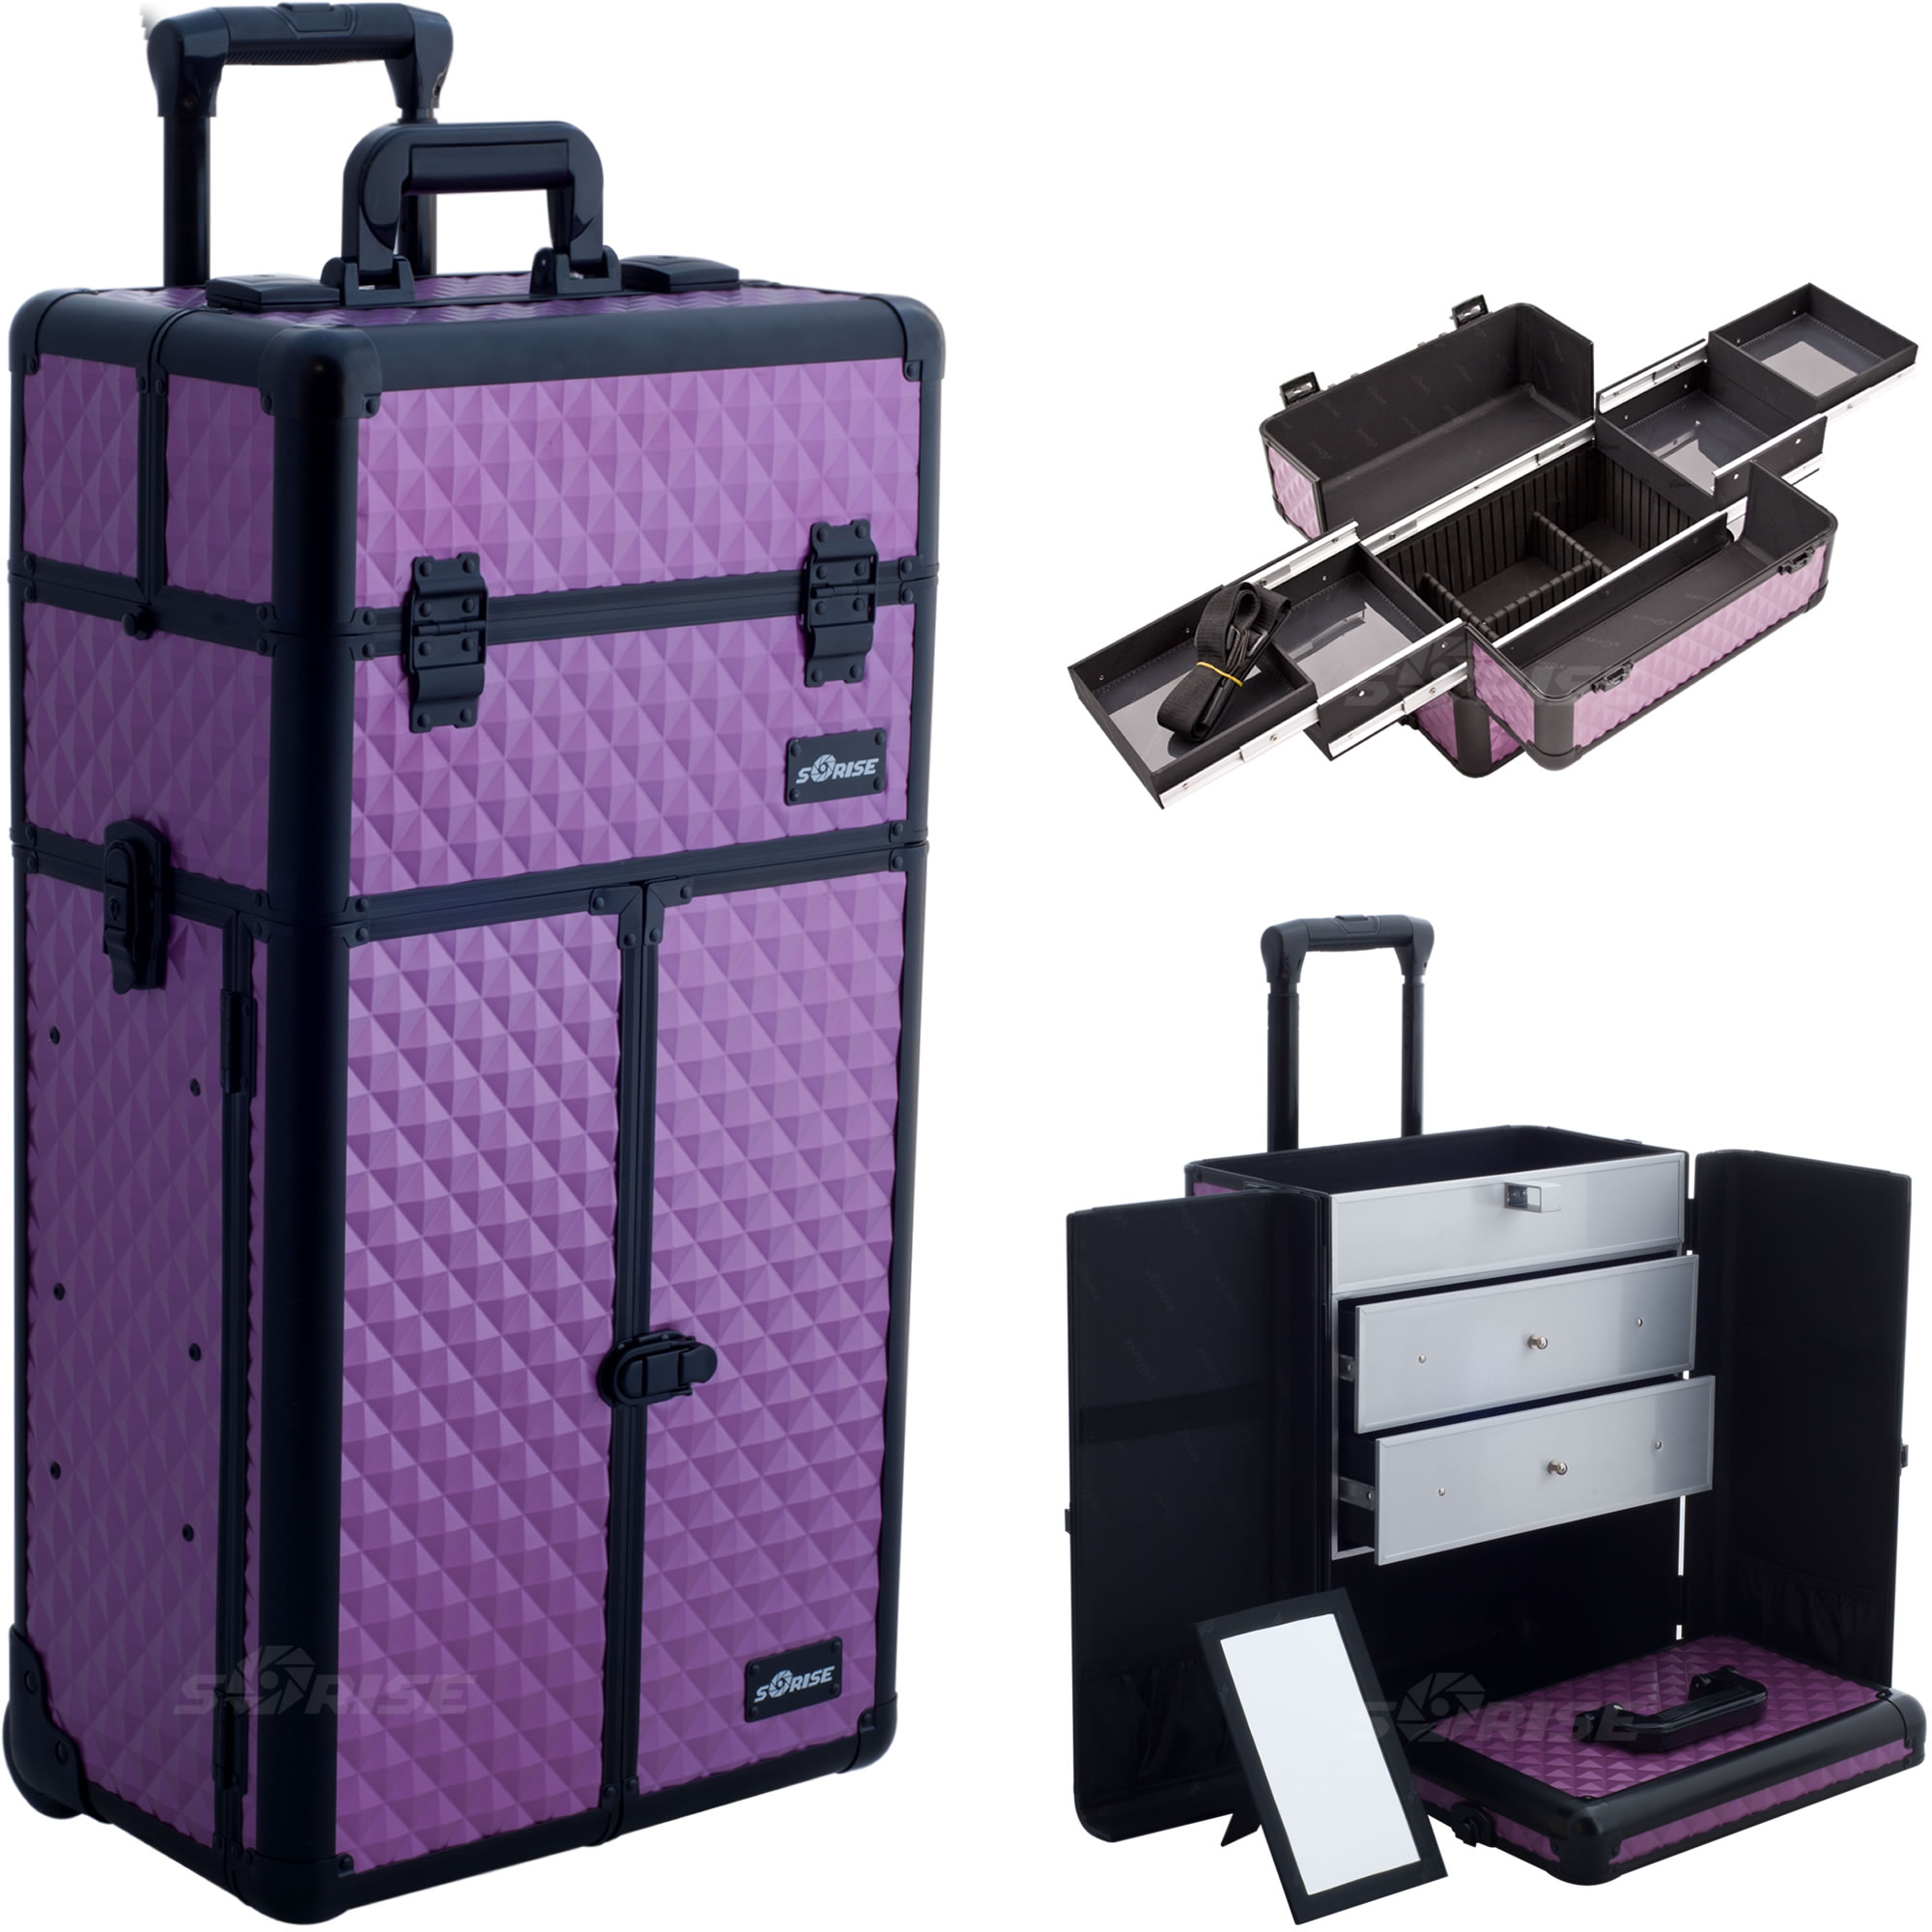 Sunrise Purple Diamond Professional Rolling Aluminum Cosmetic Makeup Case French Door Style with Large Drawers and Easy-Slide Trays I3166